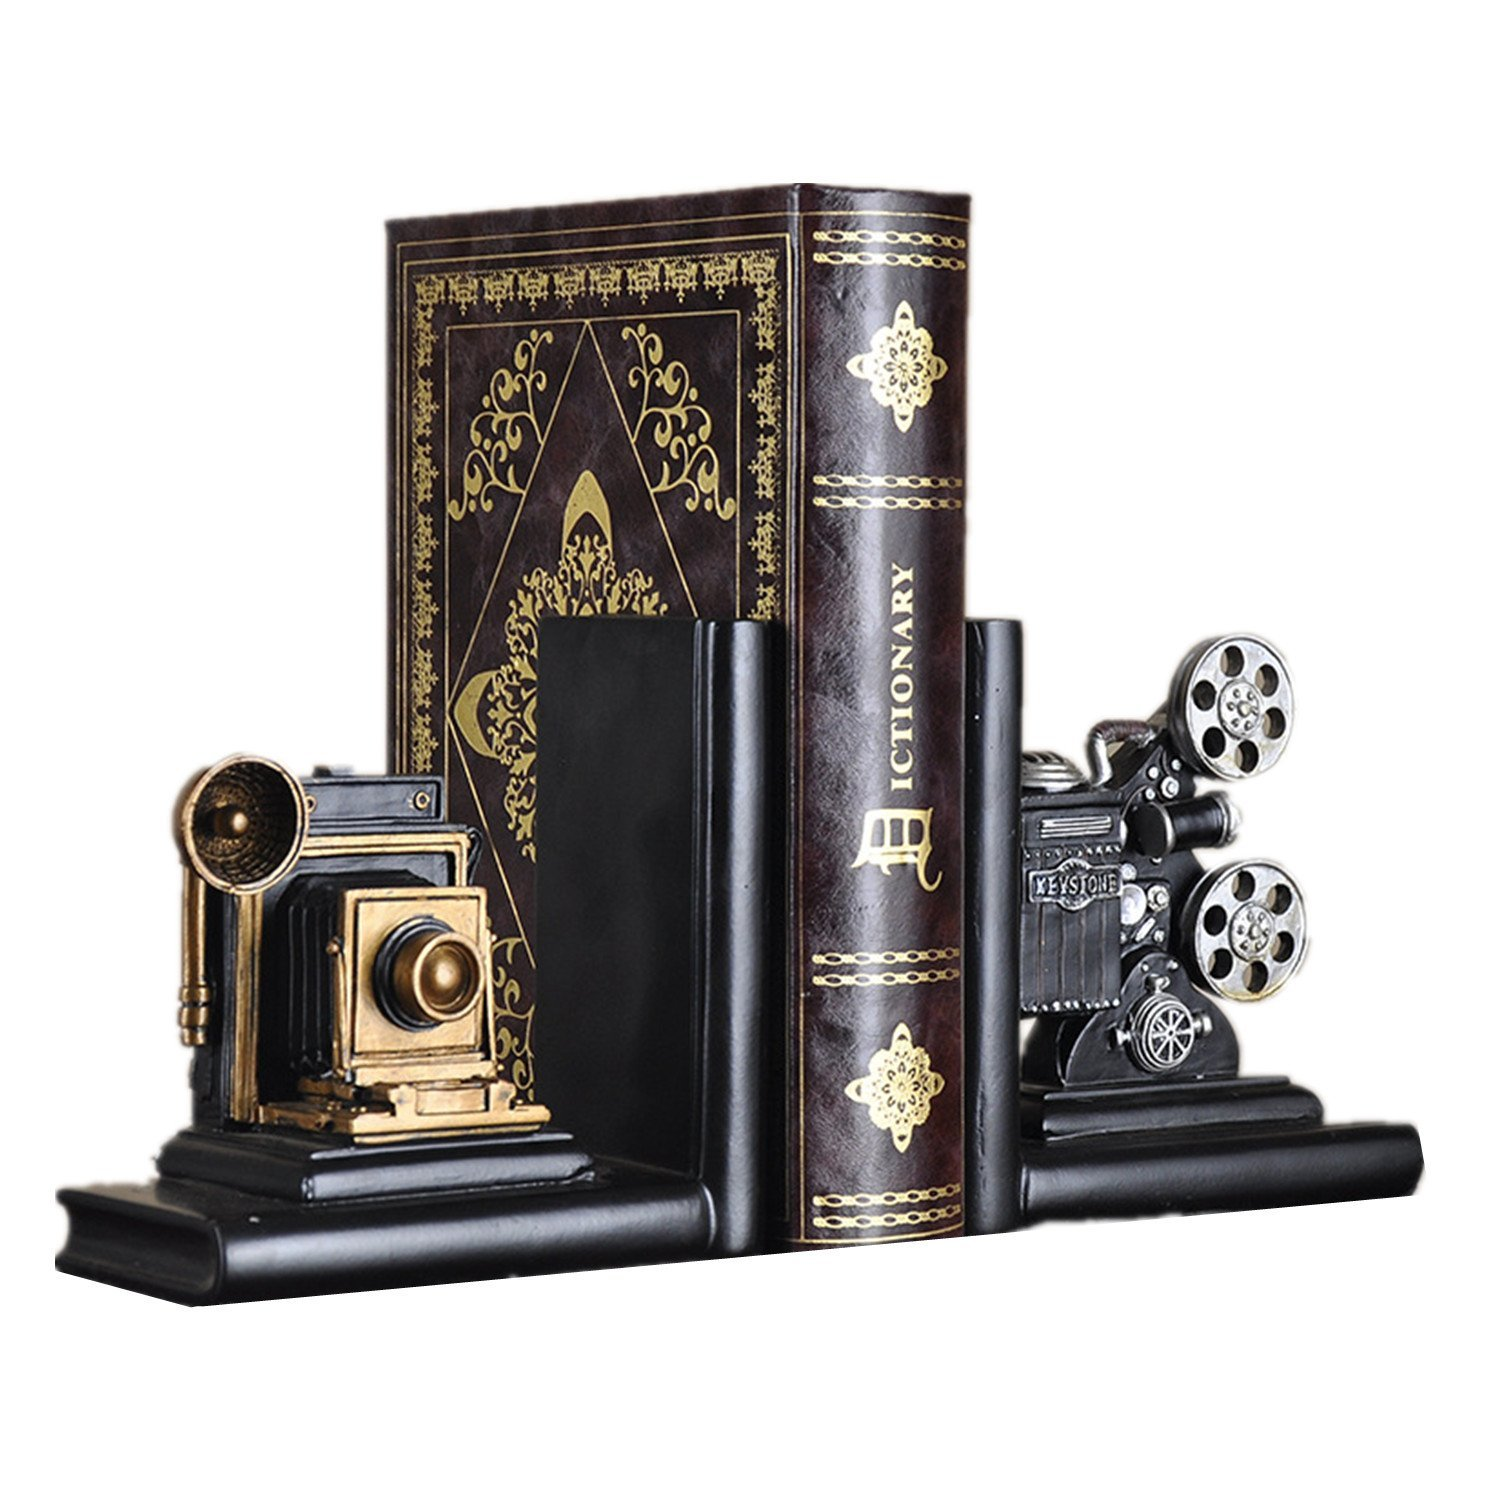 HEYFAIR Retro Camera Bookends Racks Book Ends Sets Bookshelf Organizers(1 pair) amf16061303